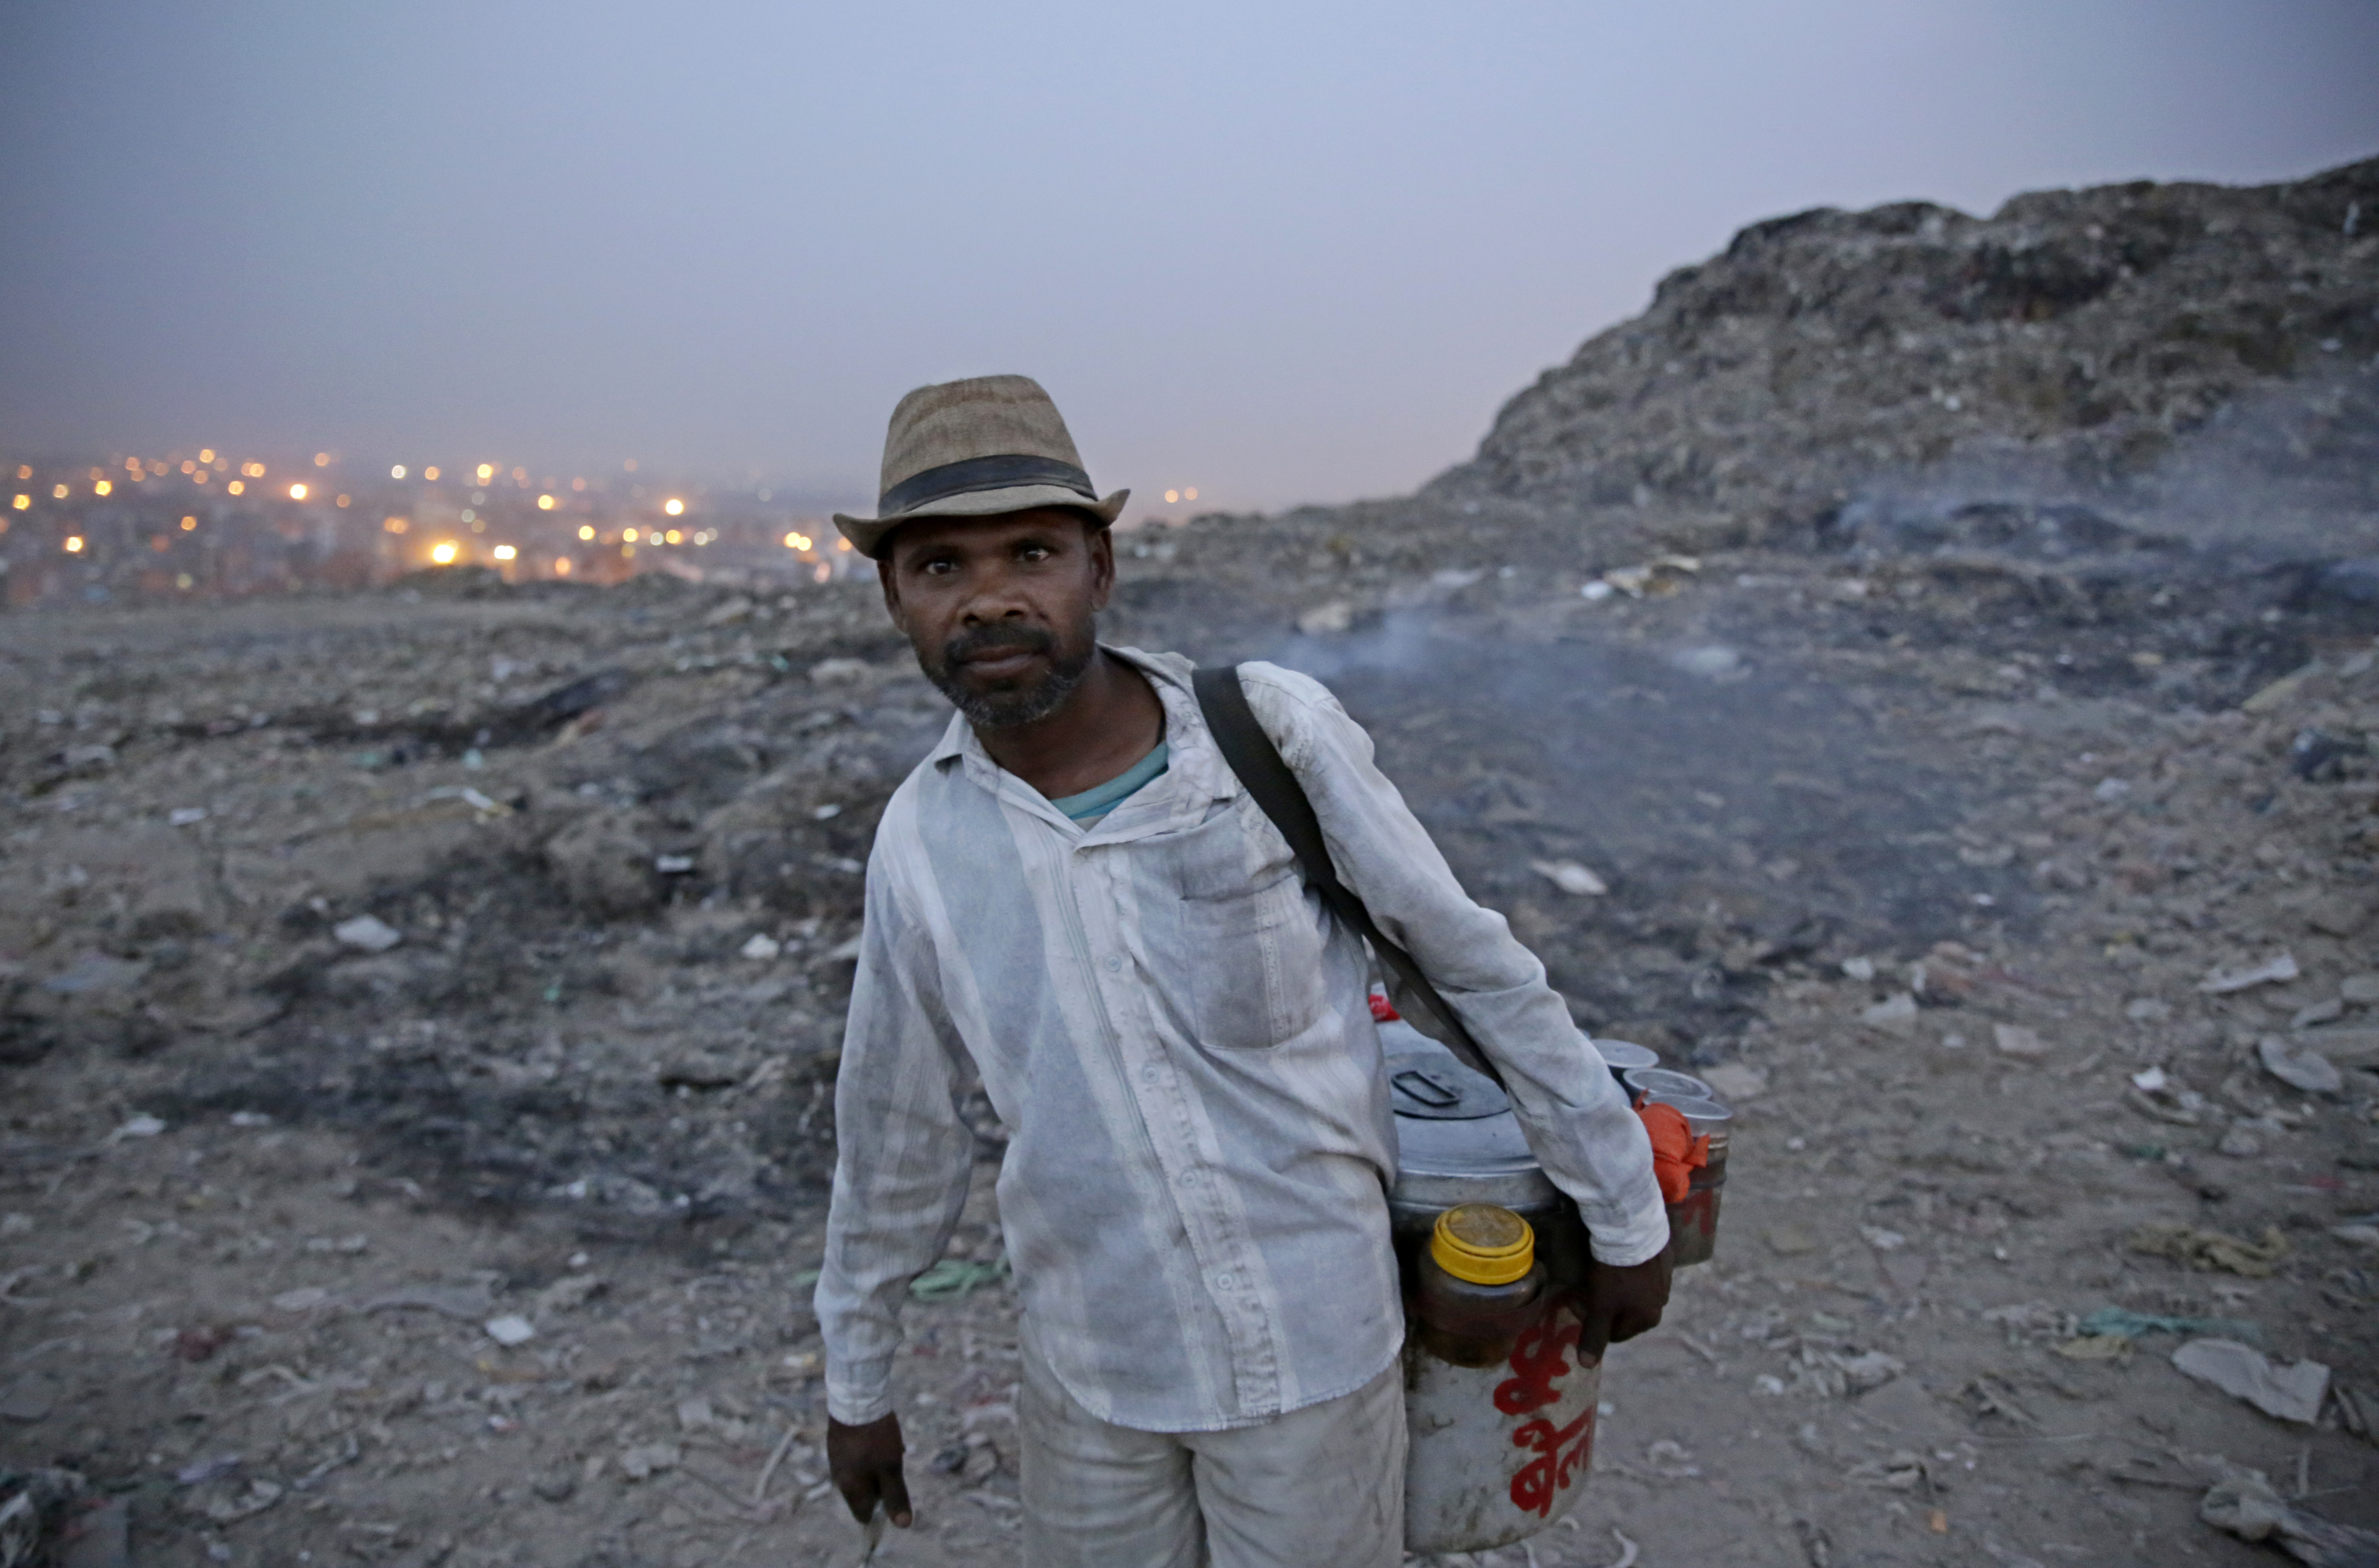 Mahamood Ali (45) has been selling sweetmeat and snacks to ragpickers for 15 years. Even though he has trouble breathing due to the fire, he cannot afford to discontinue working